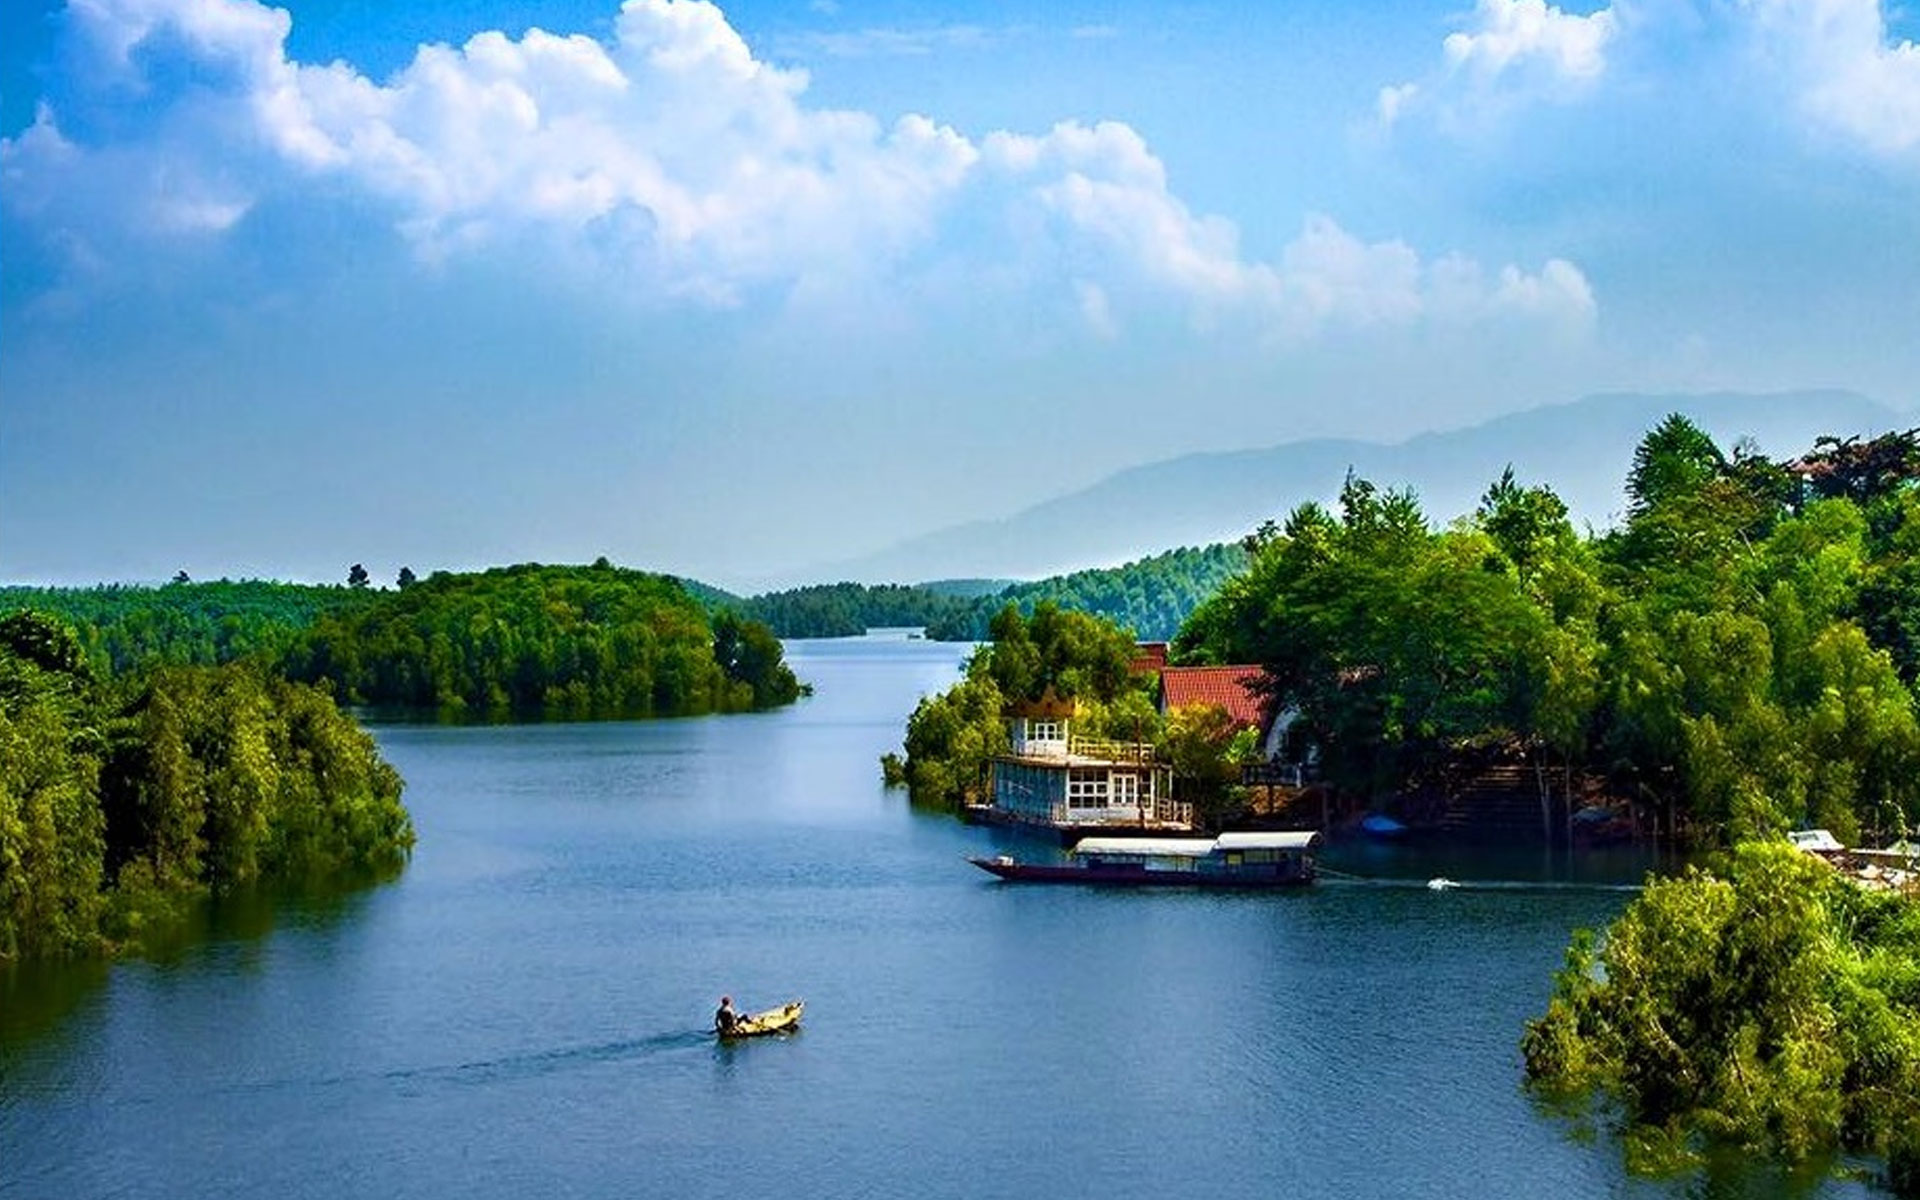 Thac Ba Lake is one of three largest man-made lakes in Vietnam.